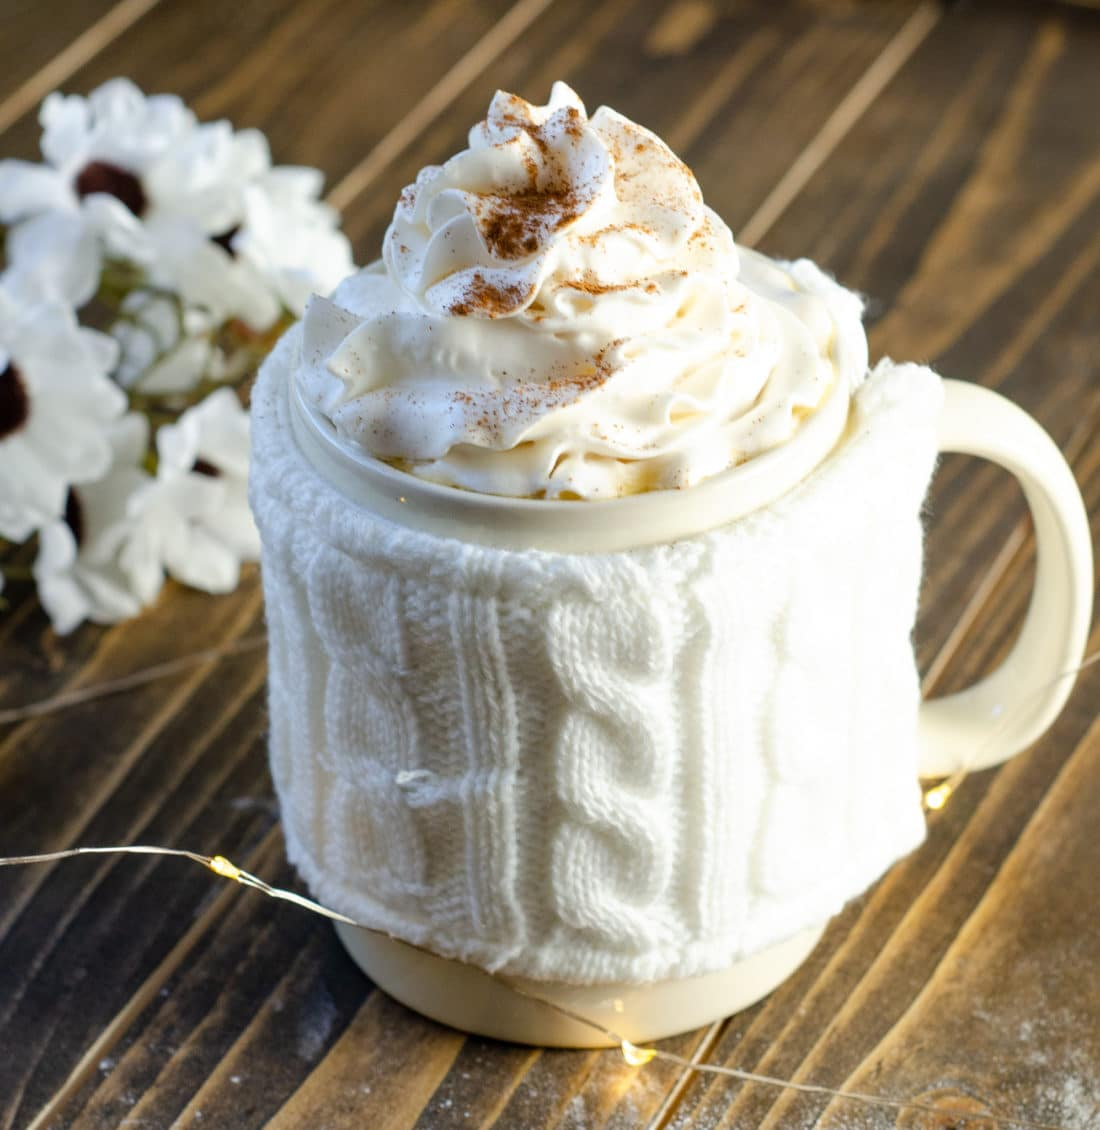 Almond Milk Butter Beer Latte. Mix up something delicious for your family this coming up holiday. Indulge in a warm cup of my Almond Milk Butterbeer Latte with a side of Sticky Toffee Pudding.